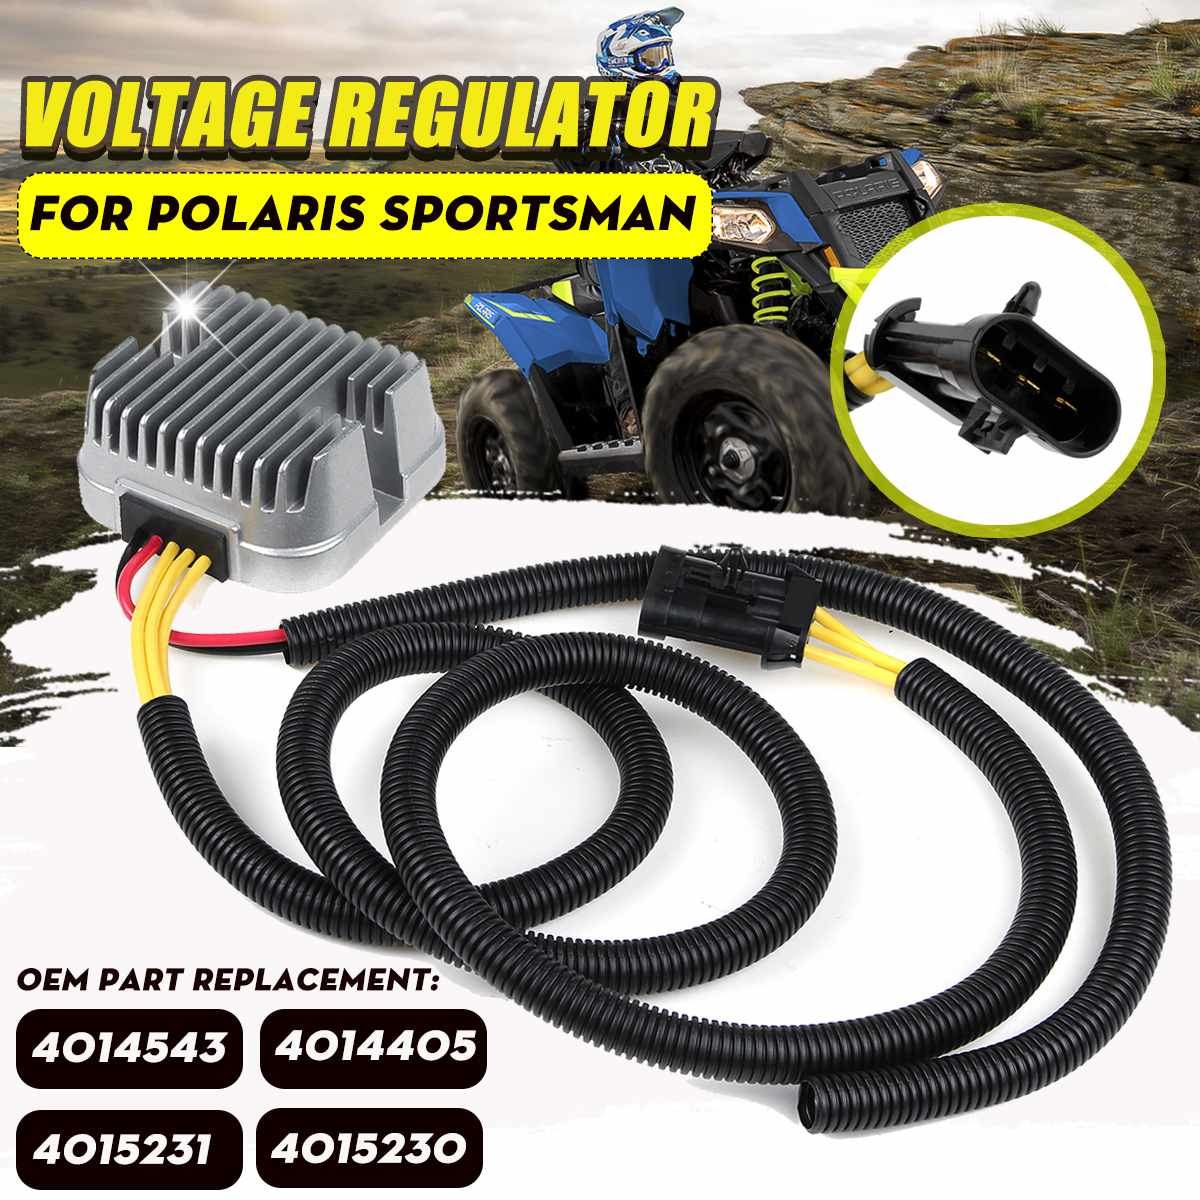 ATV Voltage Regulator Rectifier 4014405 4014543 4015231 For Polaris Sportsman 570/Touring 2014-2018 X2 570